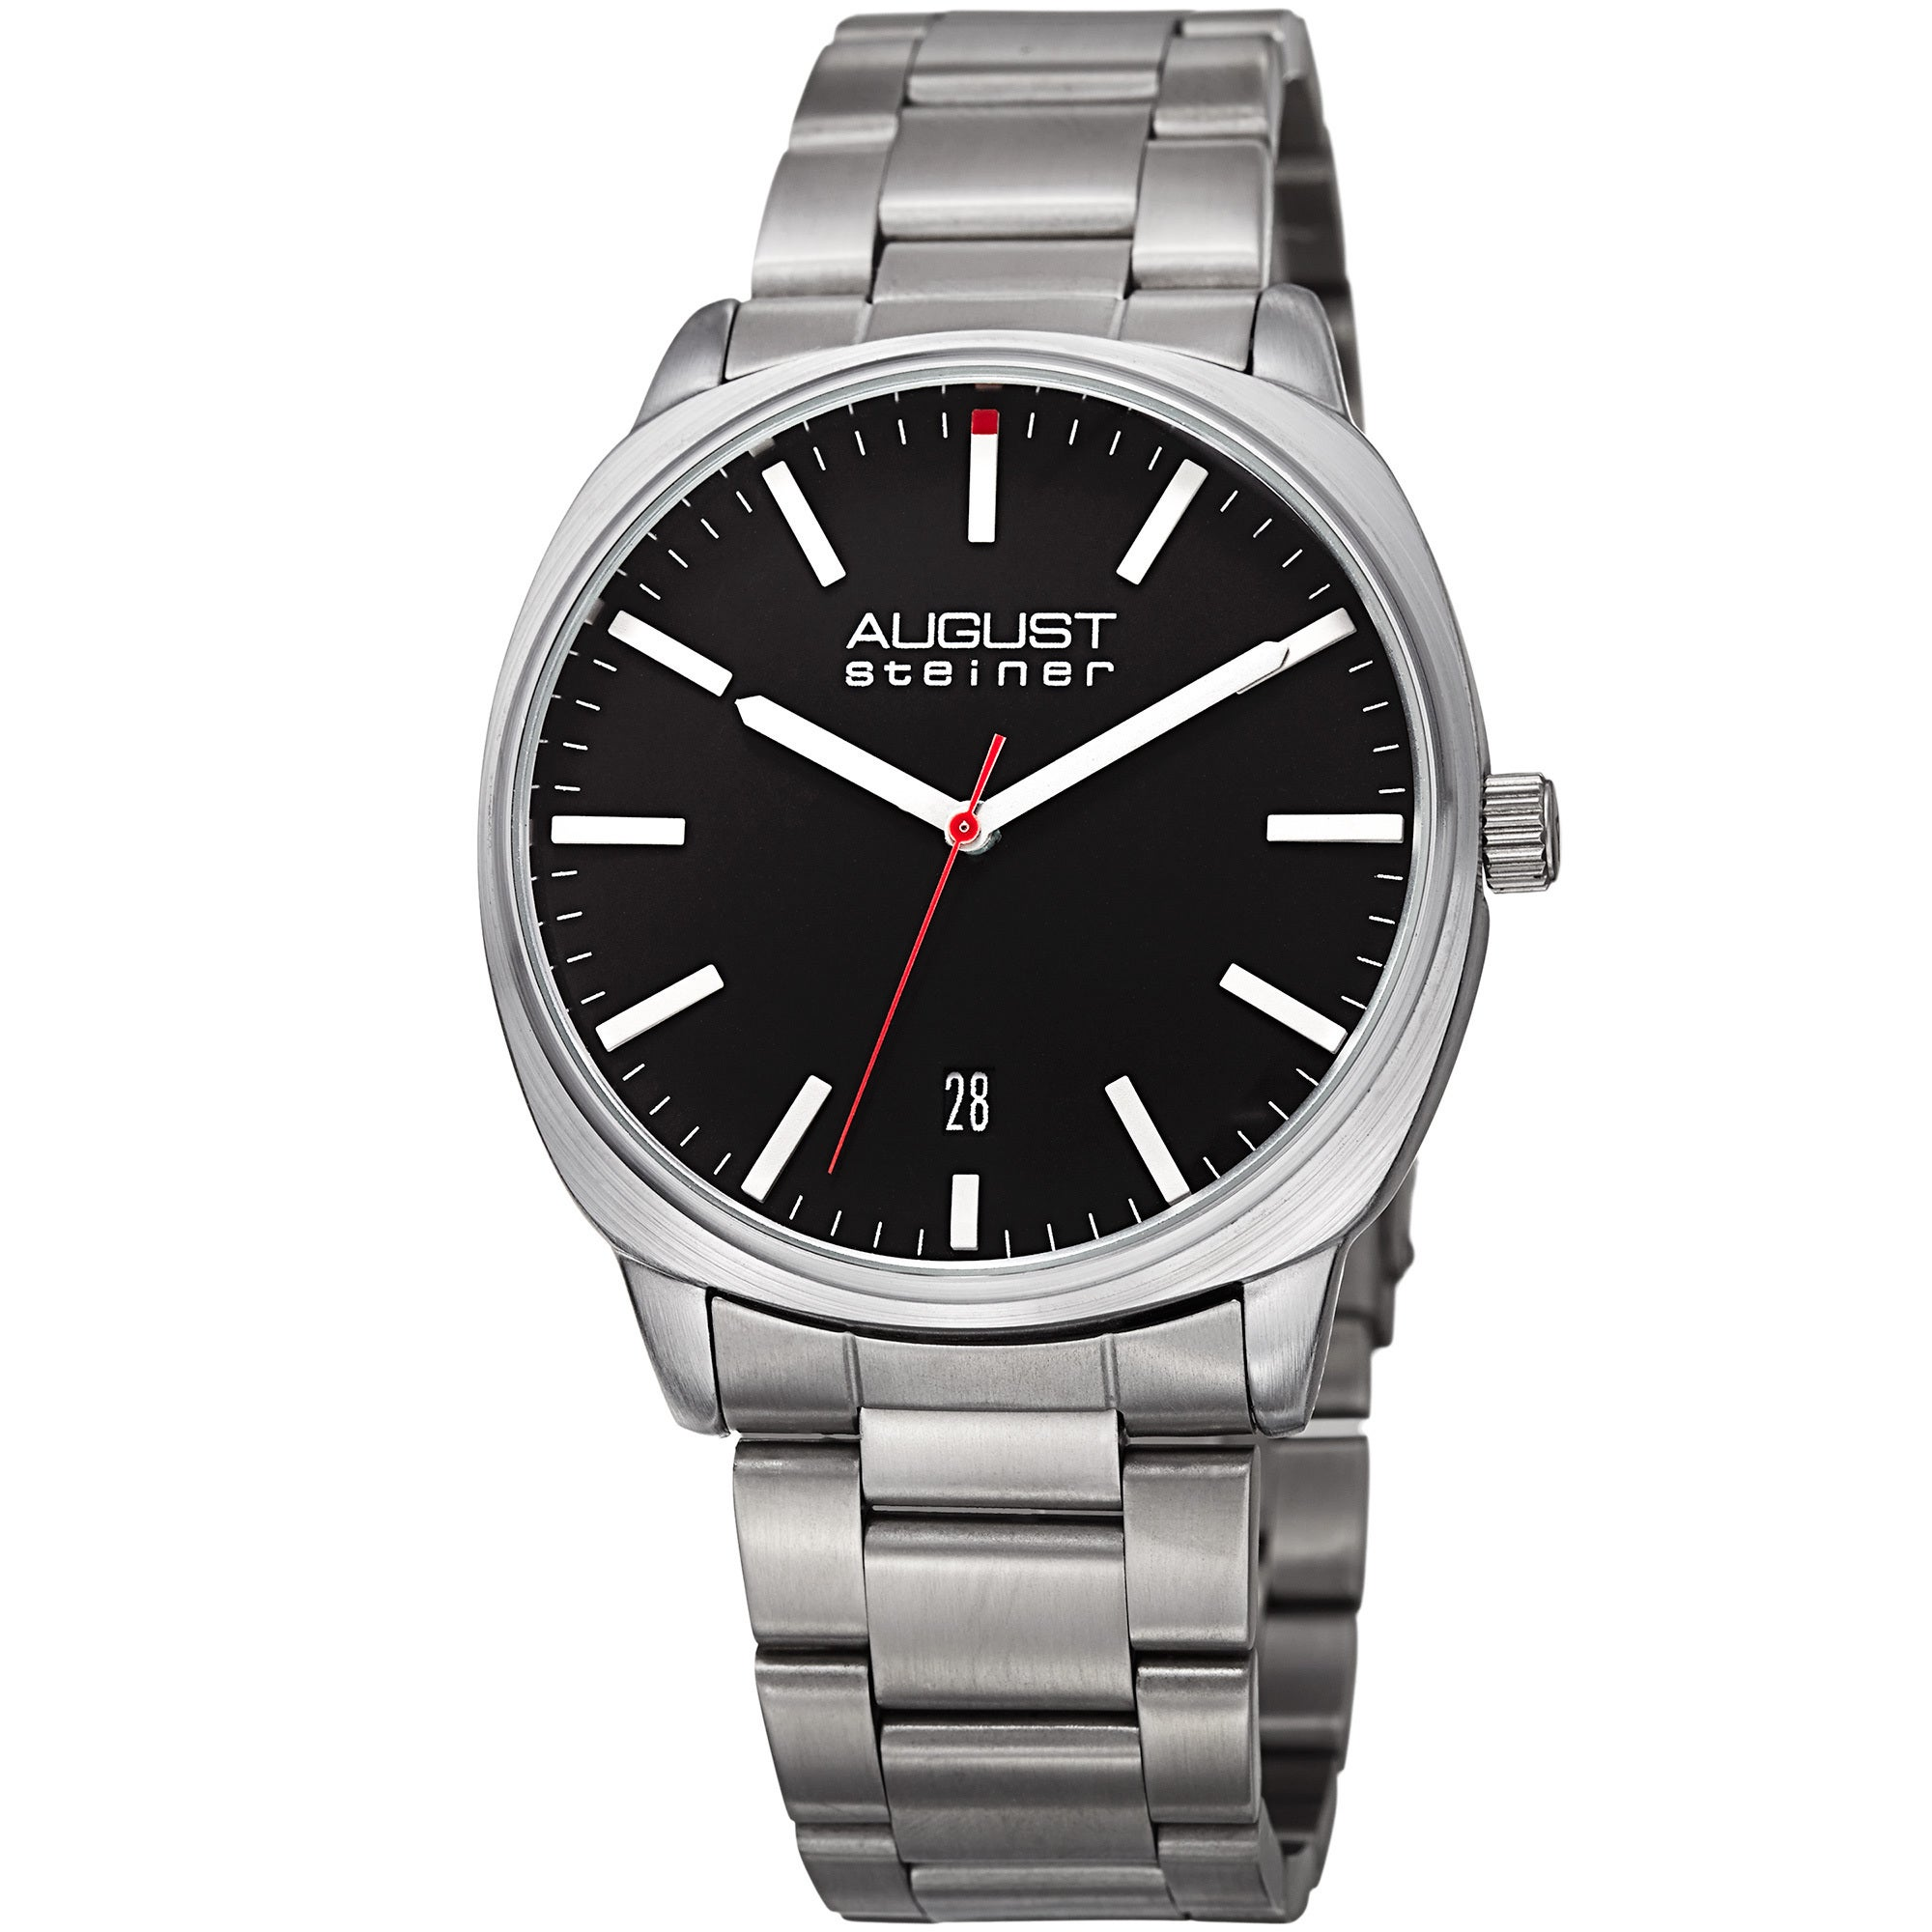 August Steiner Men's Classic Easy-to-Read Stainless Steel...